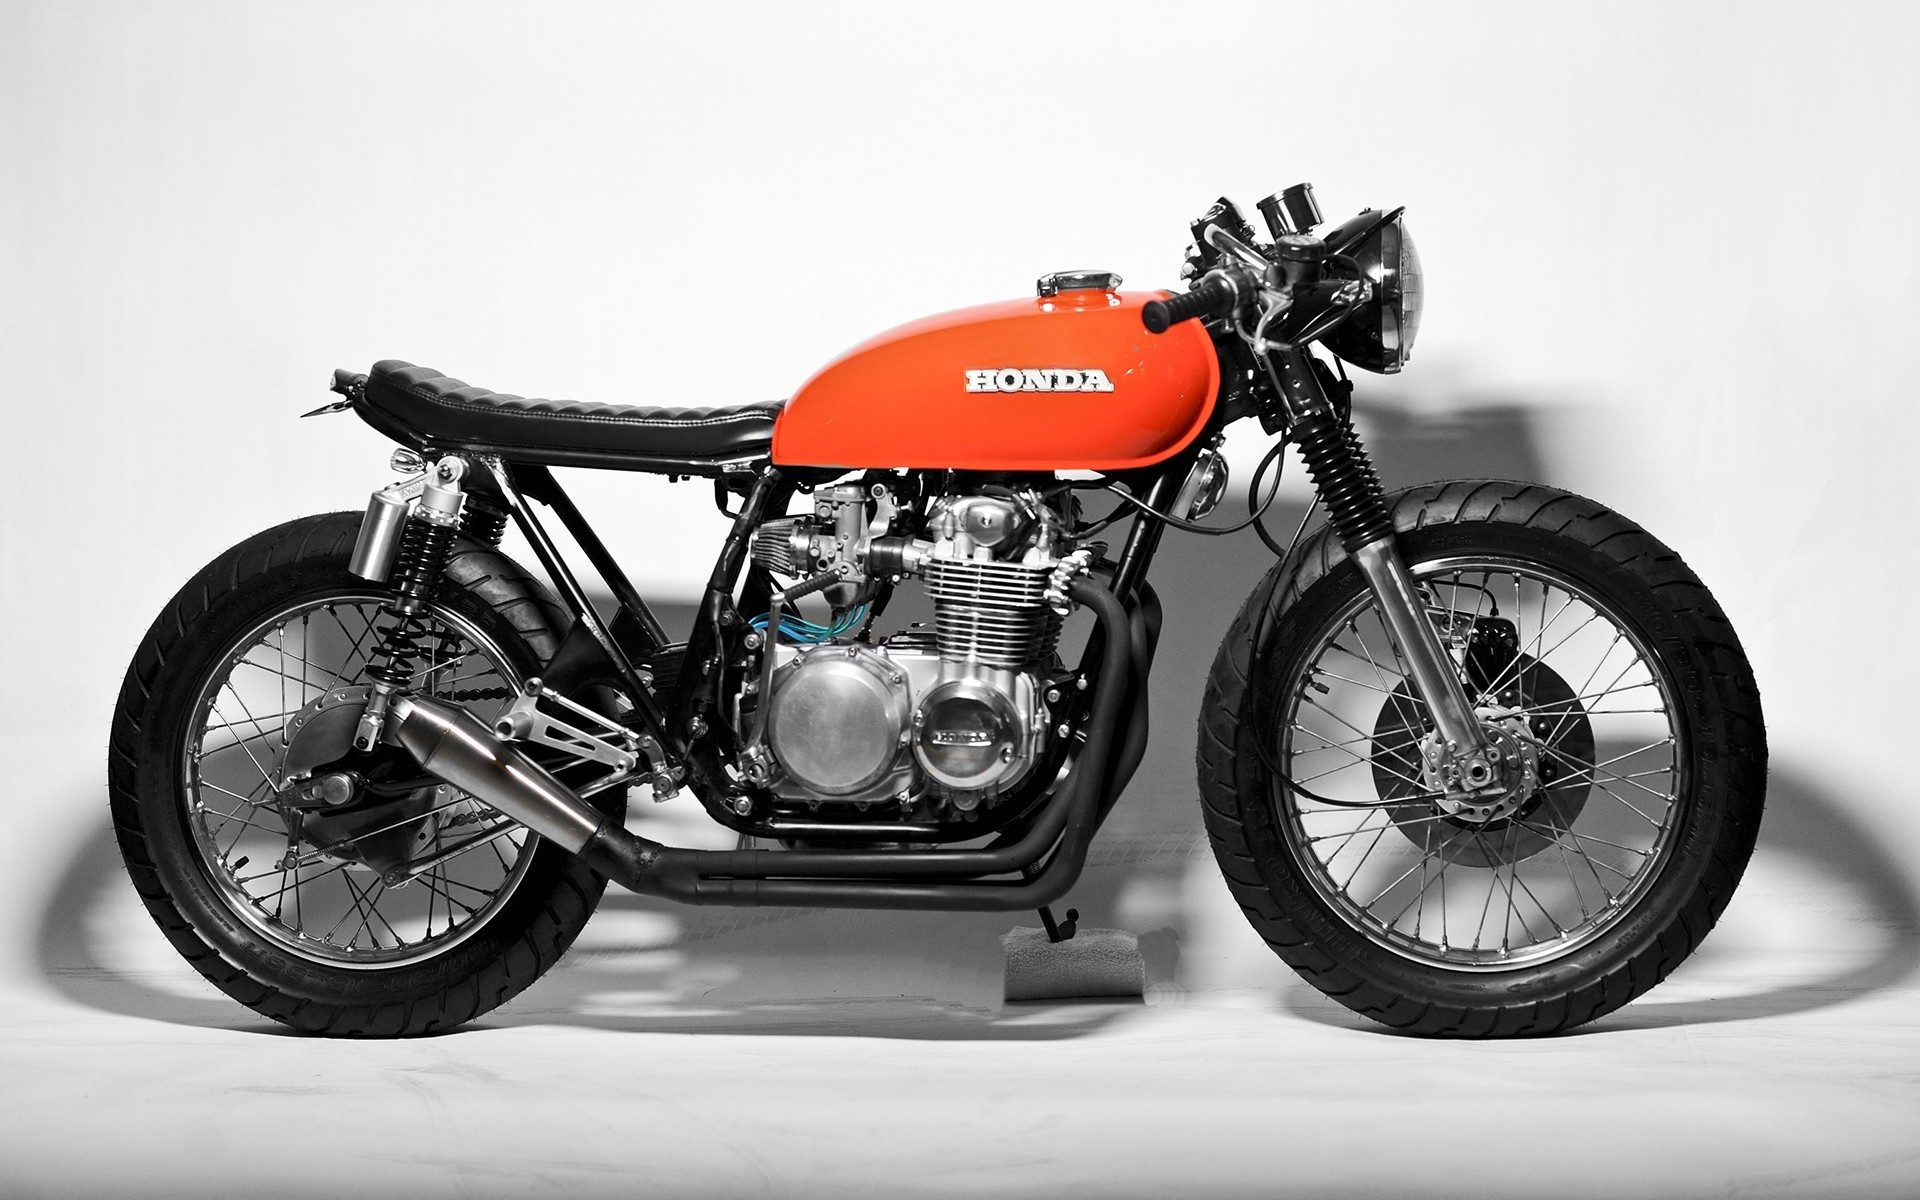 1920x1200 honda-cb500t-cafe-racer-wallpaper-2.jpg (1920Ã